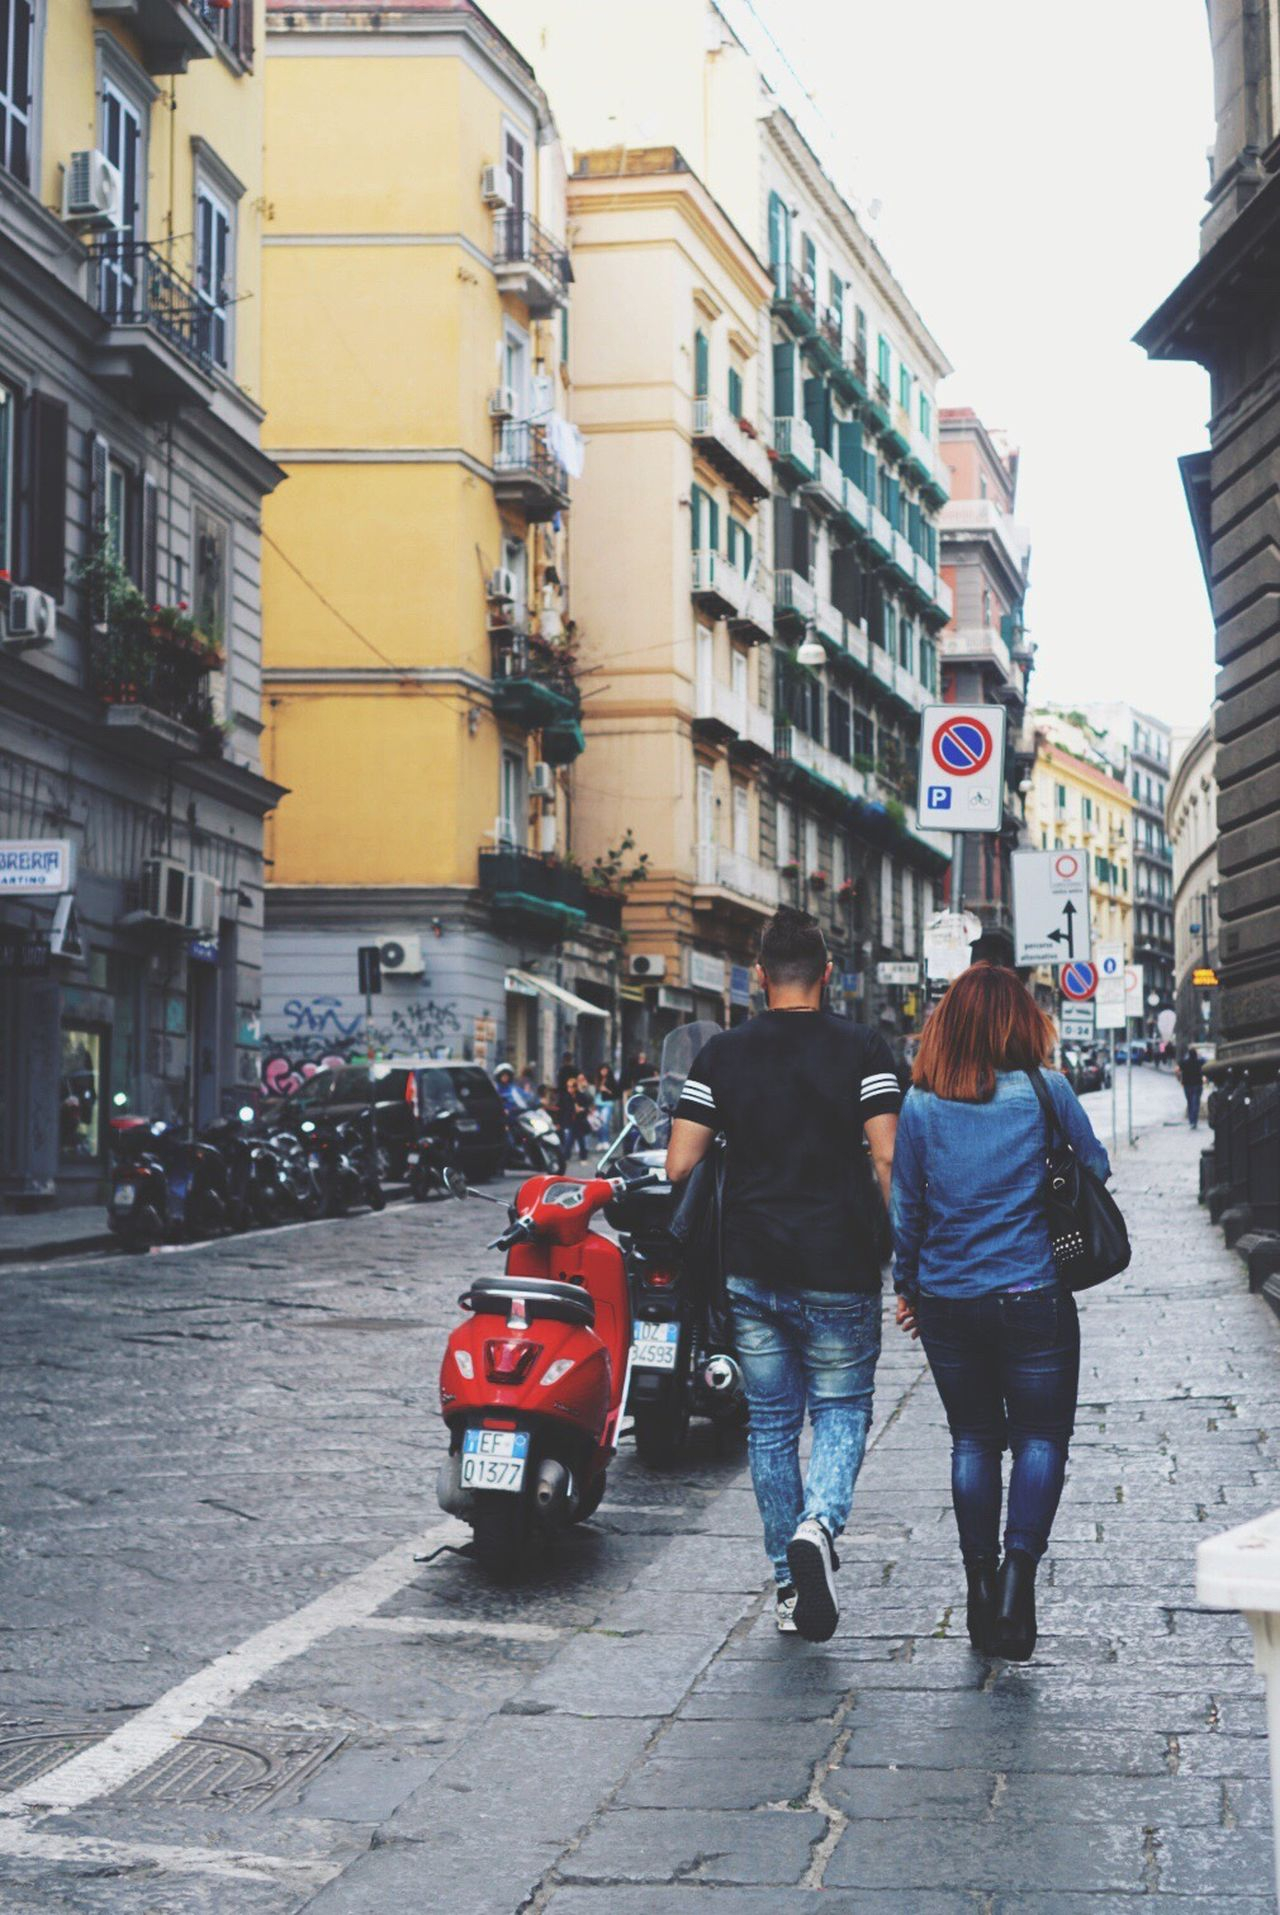 Two People City City Life Building Exterior Architecture Street Car Men City Street Women Built Structure Rear View Lifestyles Adult Adults Only Transportation Togetherness Full Length Outdoors Day Naples, Italy